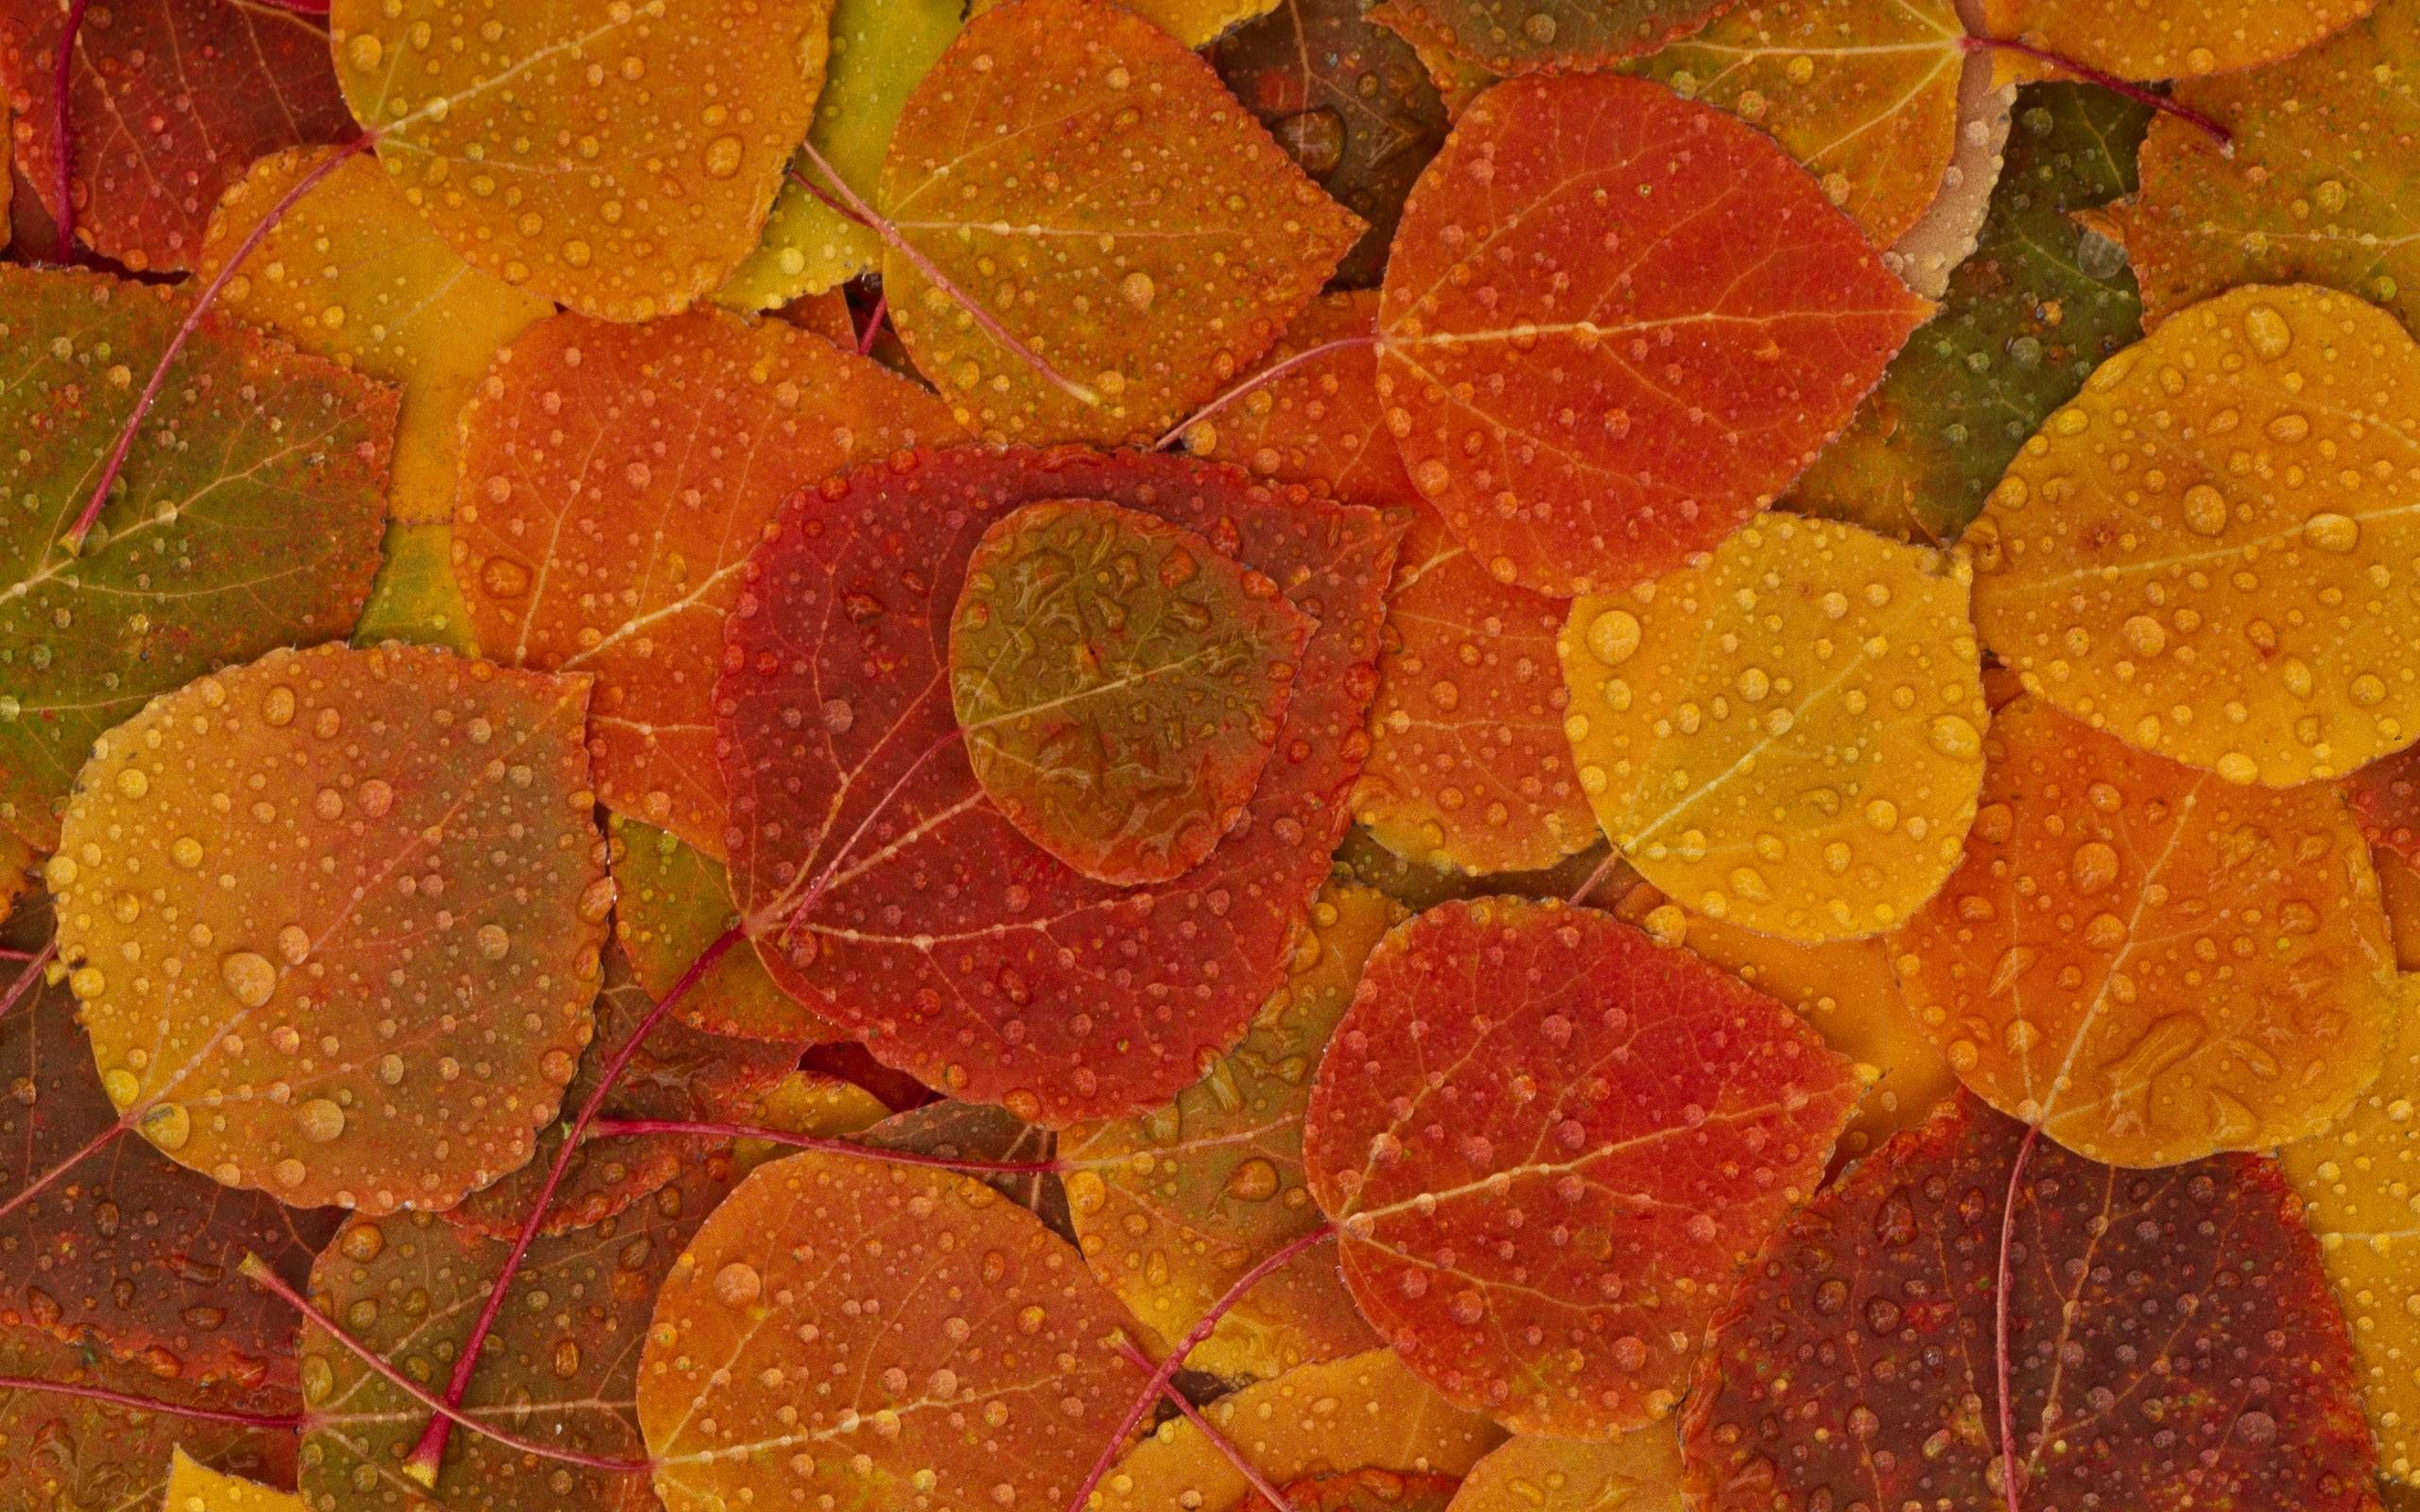 fall leaves on the autumn wallpaper background 6787 wallpaper